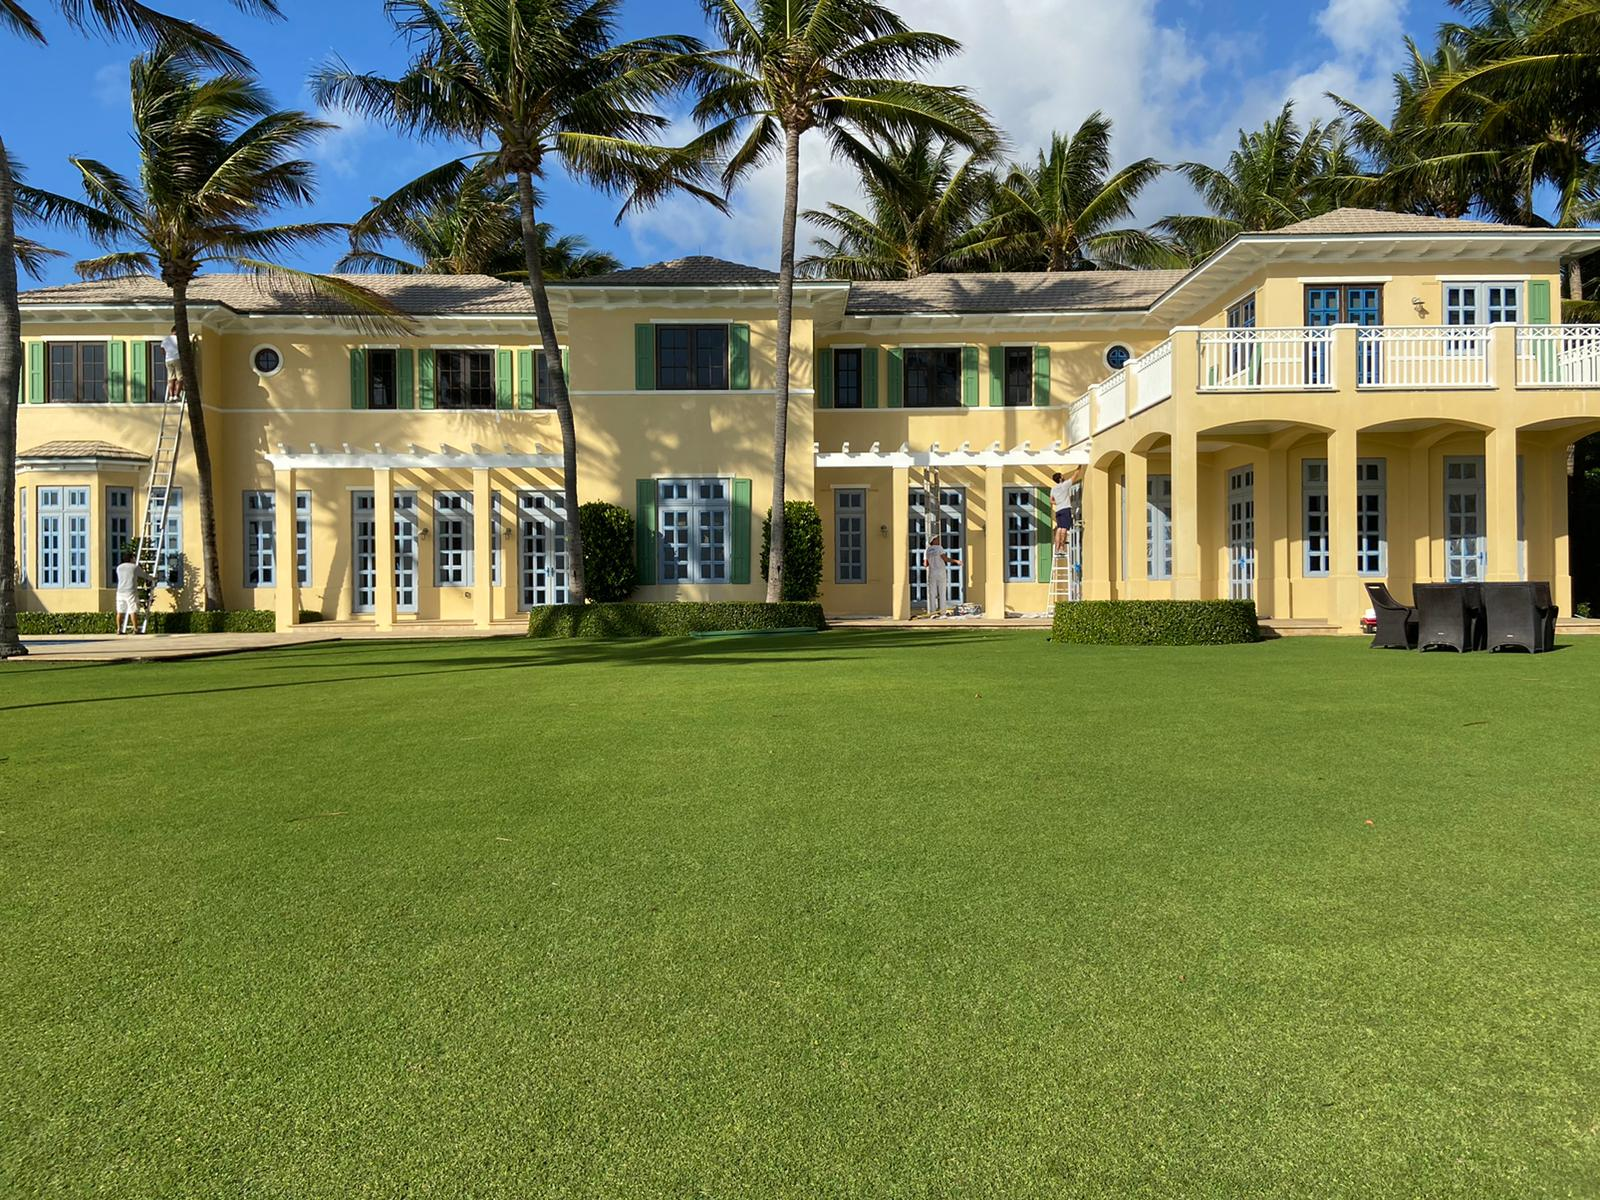 Complete Exterior WPB House